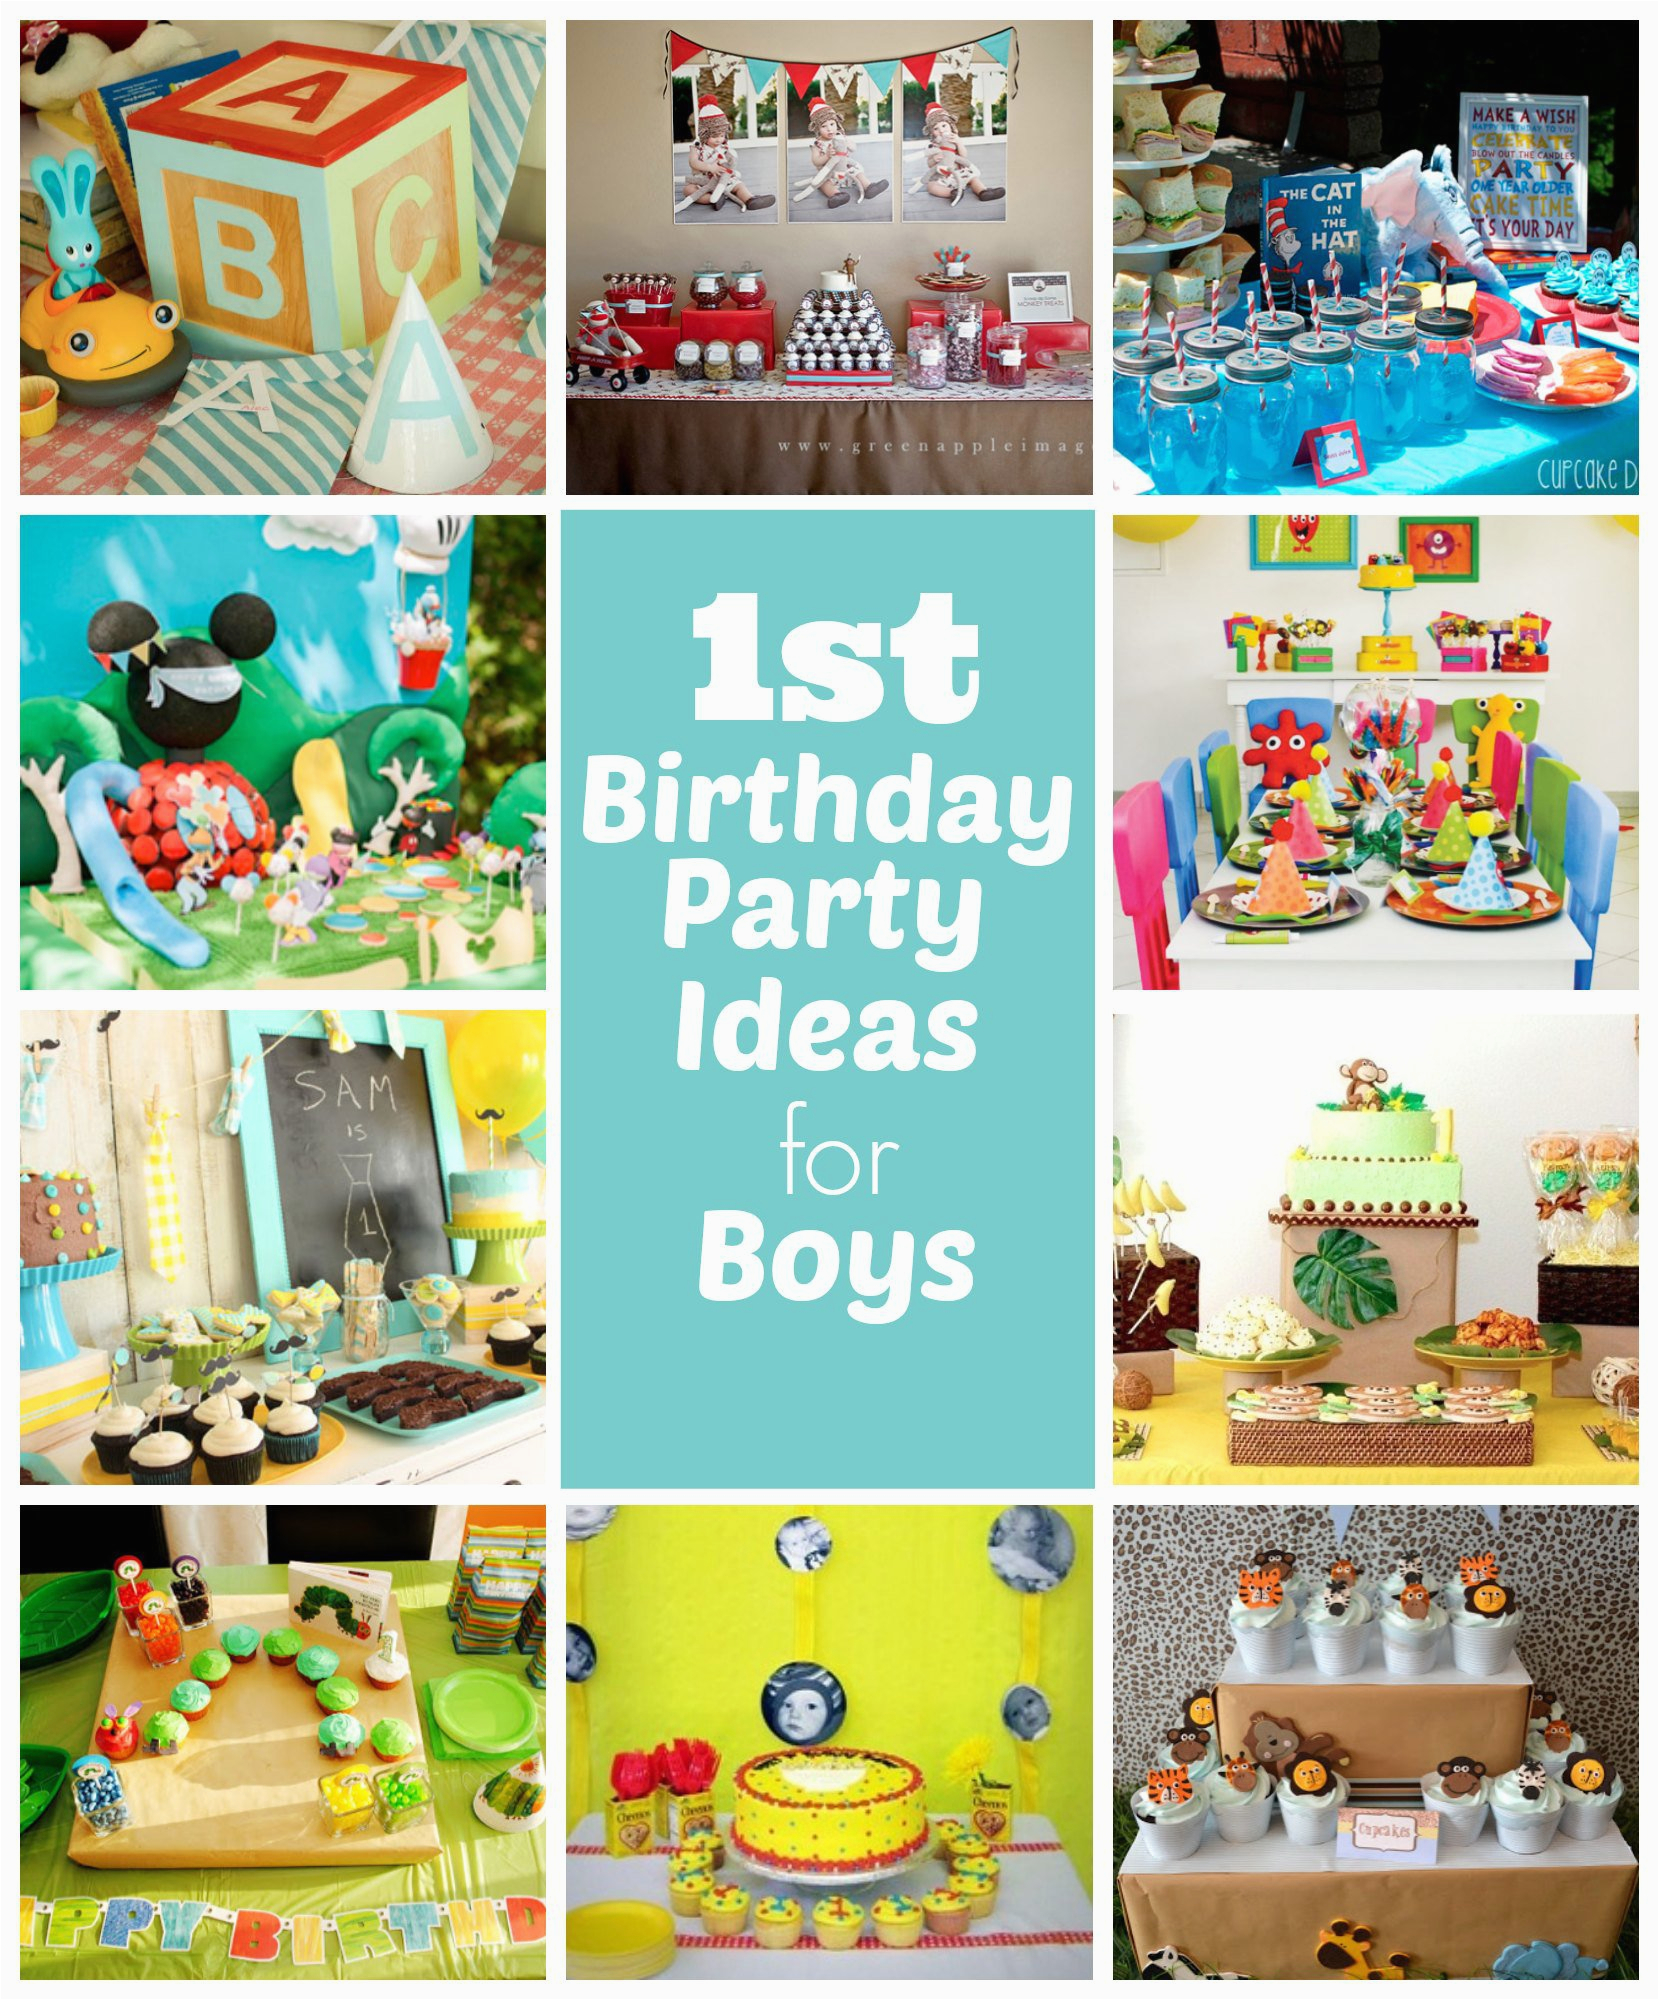 Baby Boy First Birthday Party Decorations 1st Ideas For Boys Right Start Blog On